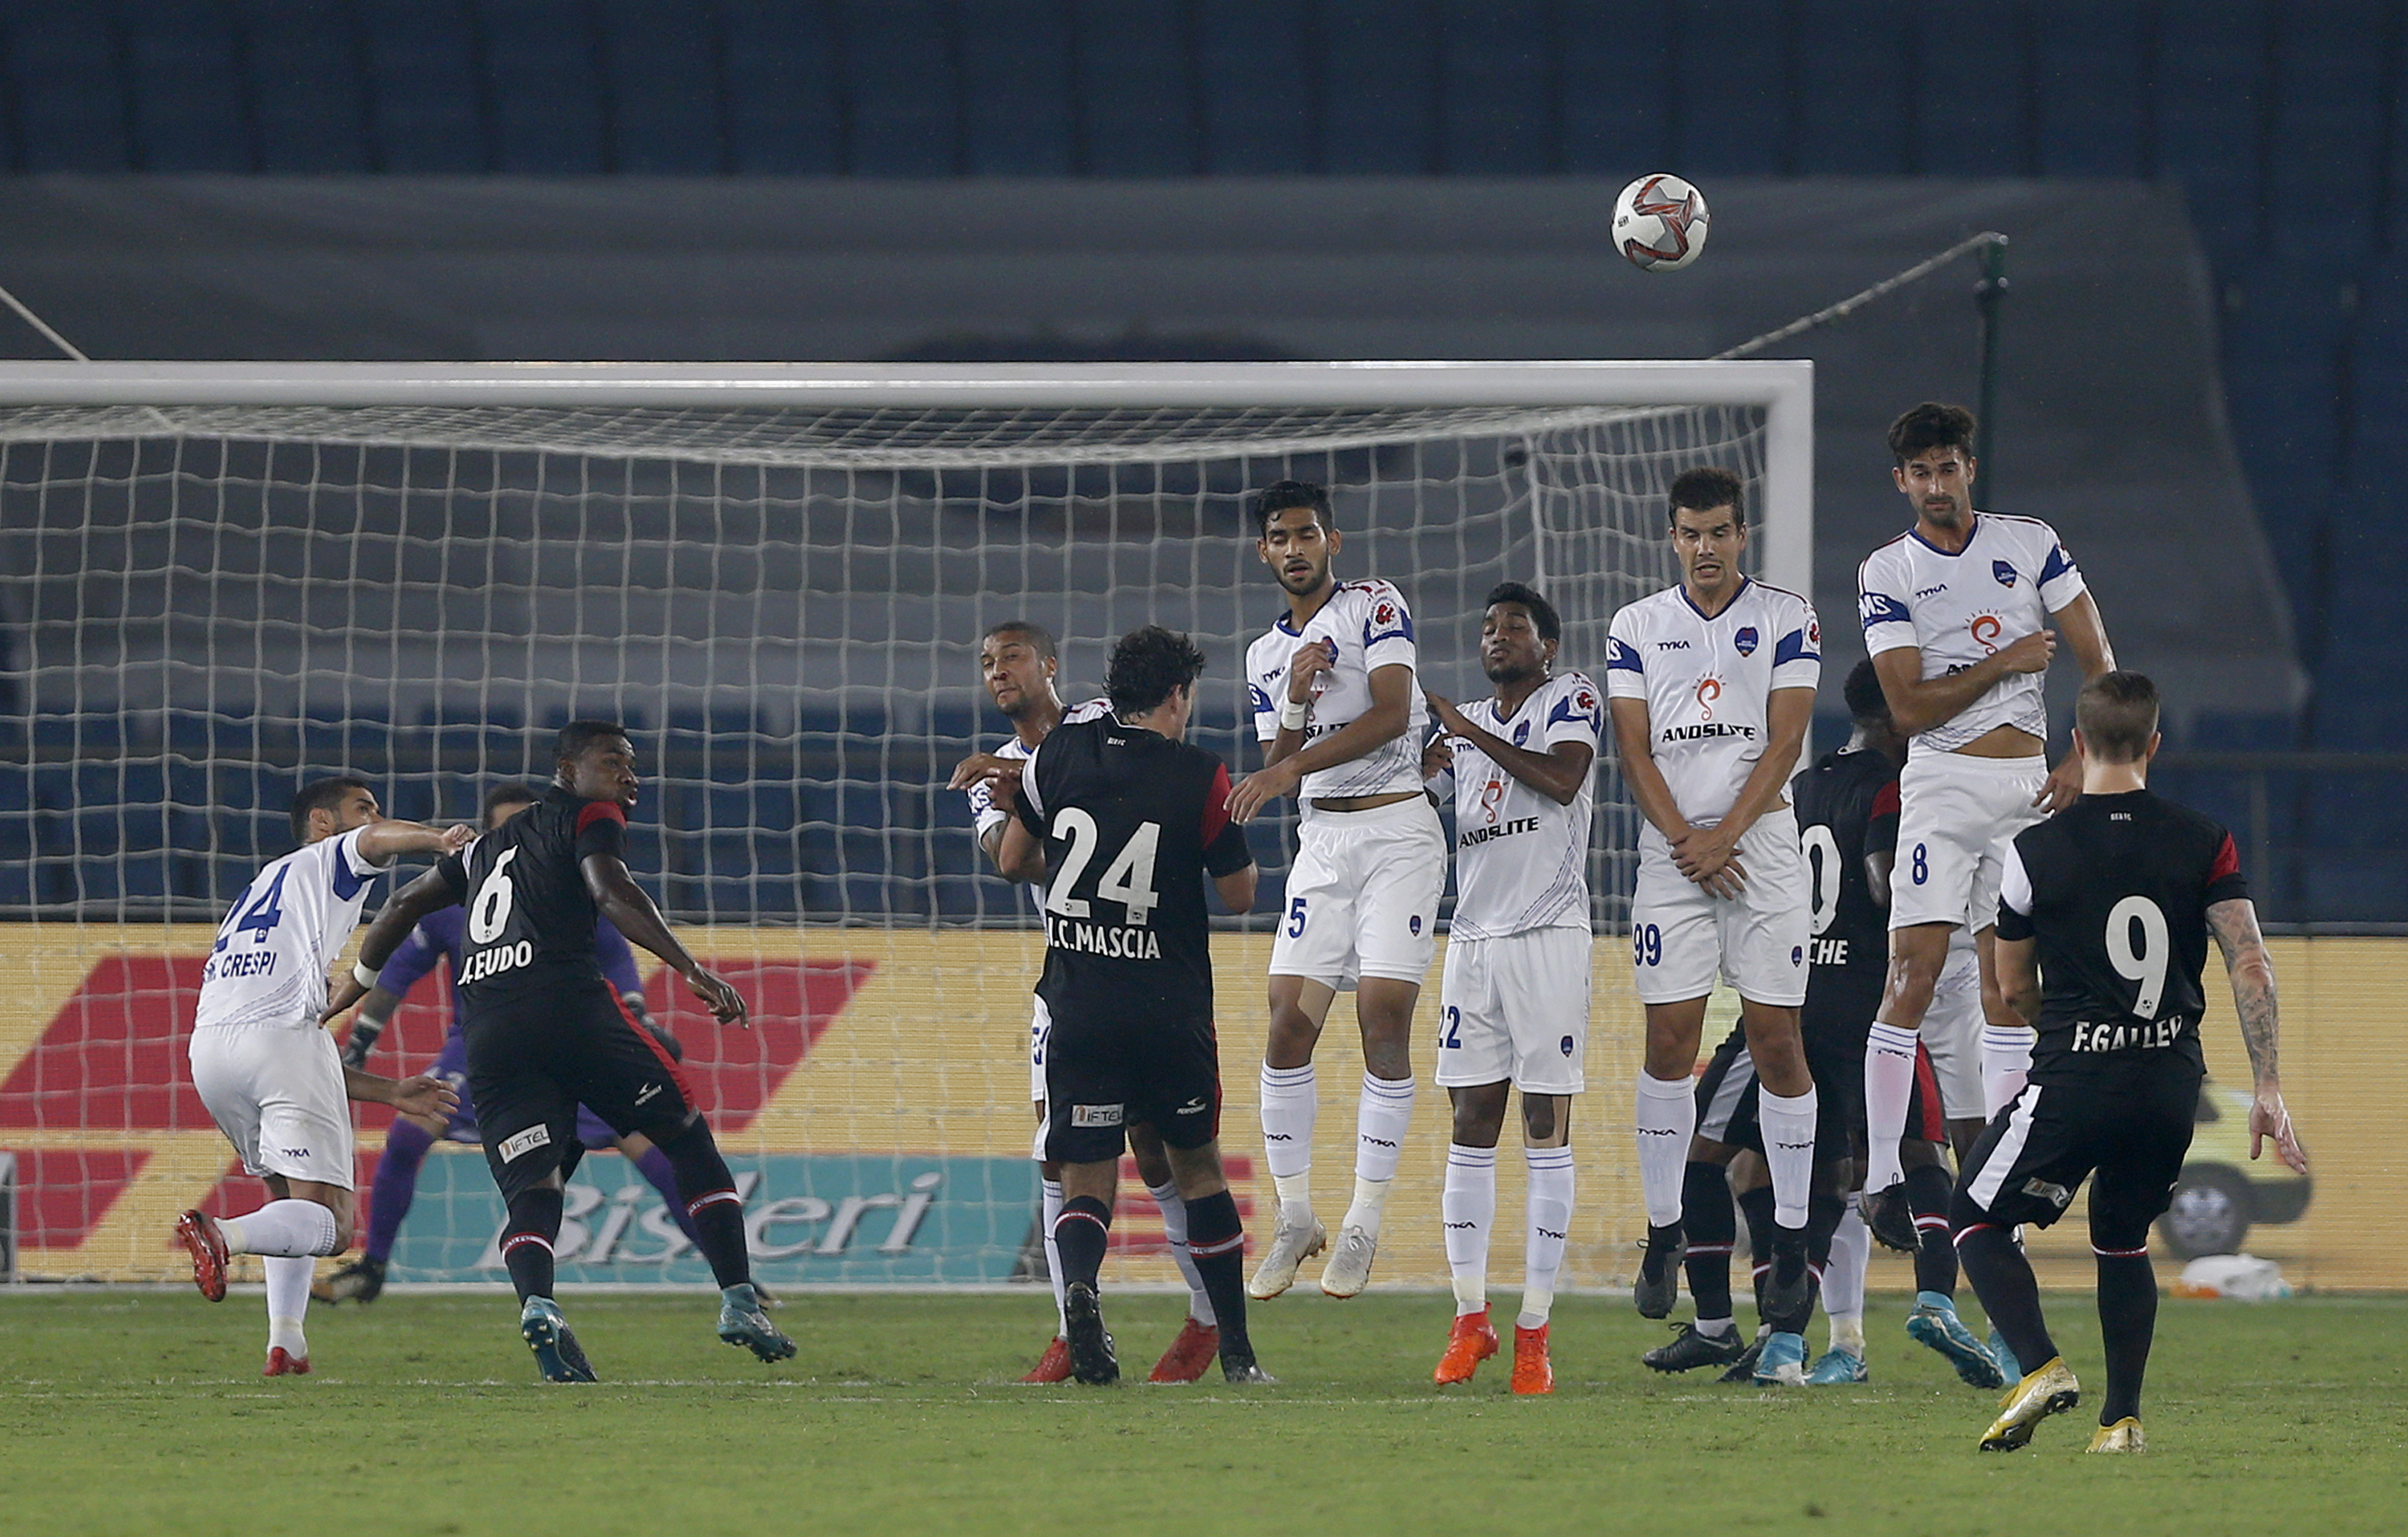 Delhi Dynamos FC players leap in air to stop a the ball hit by NorthEast United FC's Federico Gallego during Hero Indian Super League soccer match between Delhi Dynamos FC and NorthEast United FC in New Delhi - AP